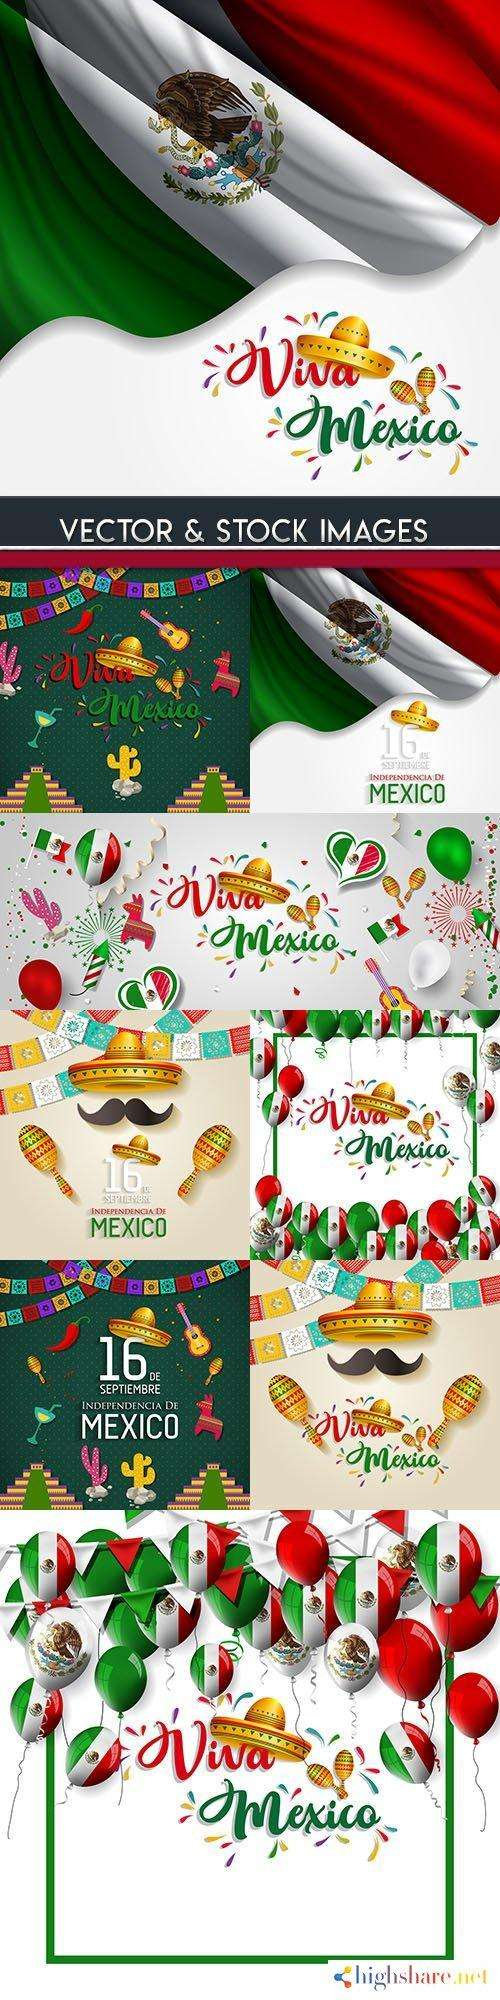 mexico national day and viva mexico illustration design 5f4d019e73b76 - Mexico national day and Viva Mexico illustration design